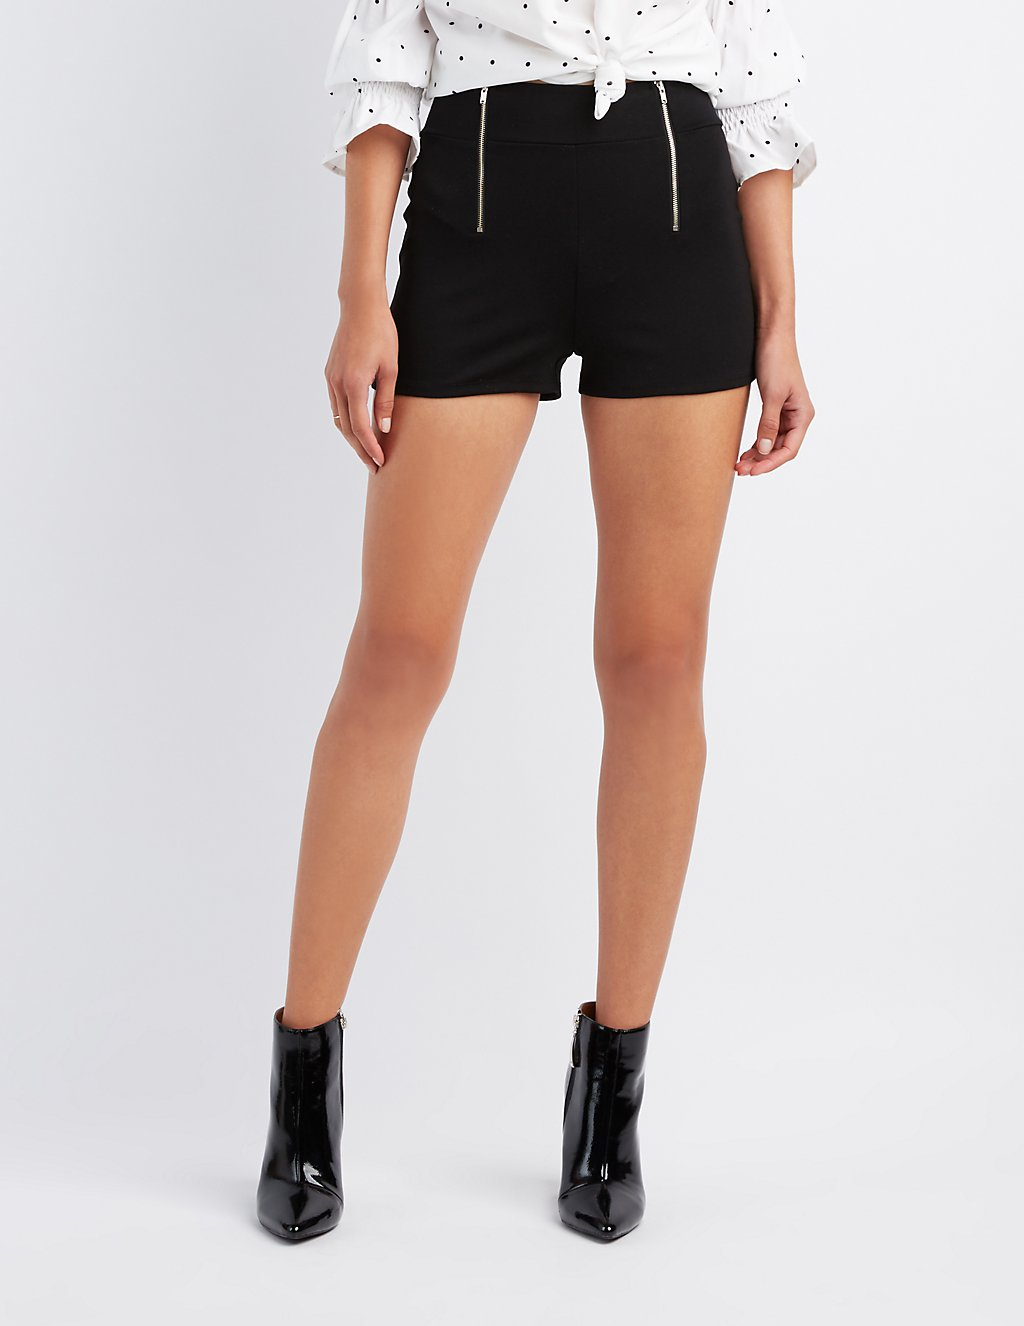 Sexy Denim, High-Waisted, & Lace Shorts   Charlotte Russe